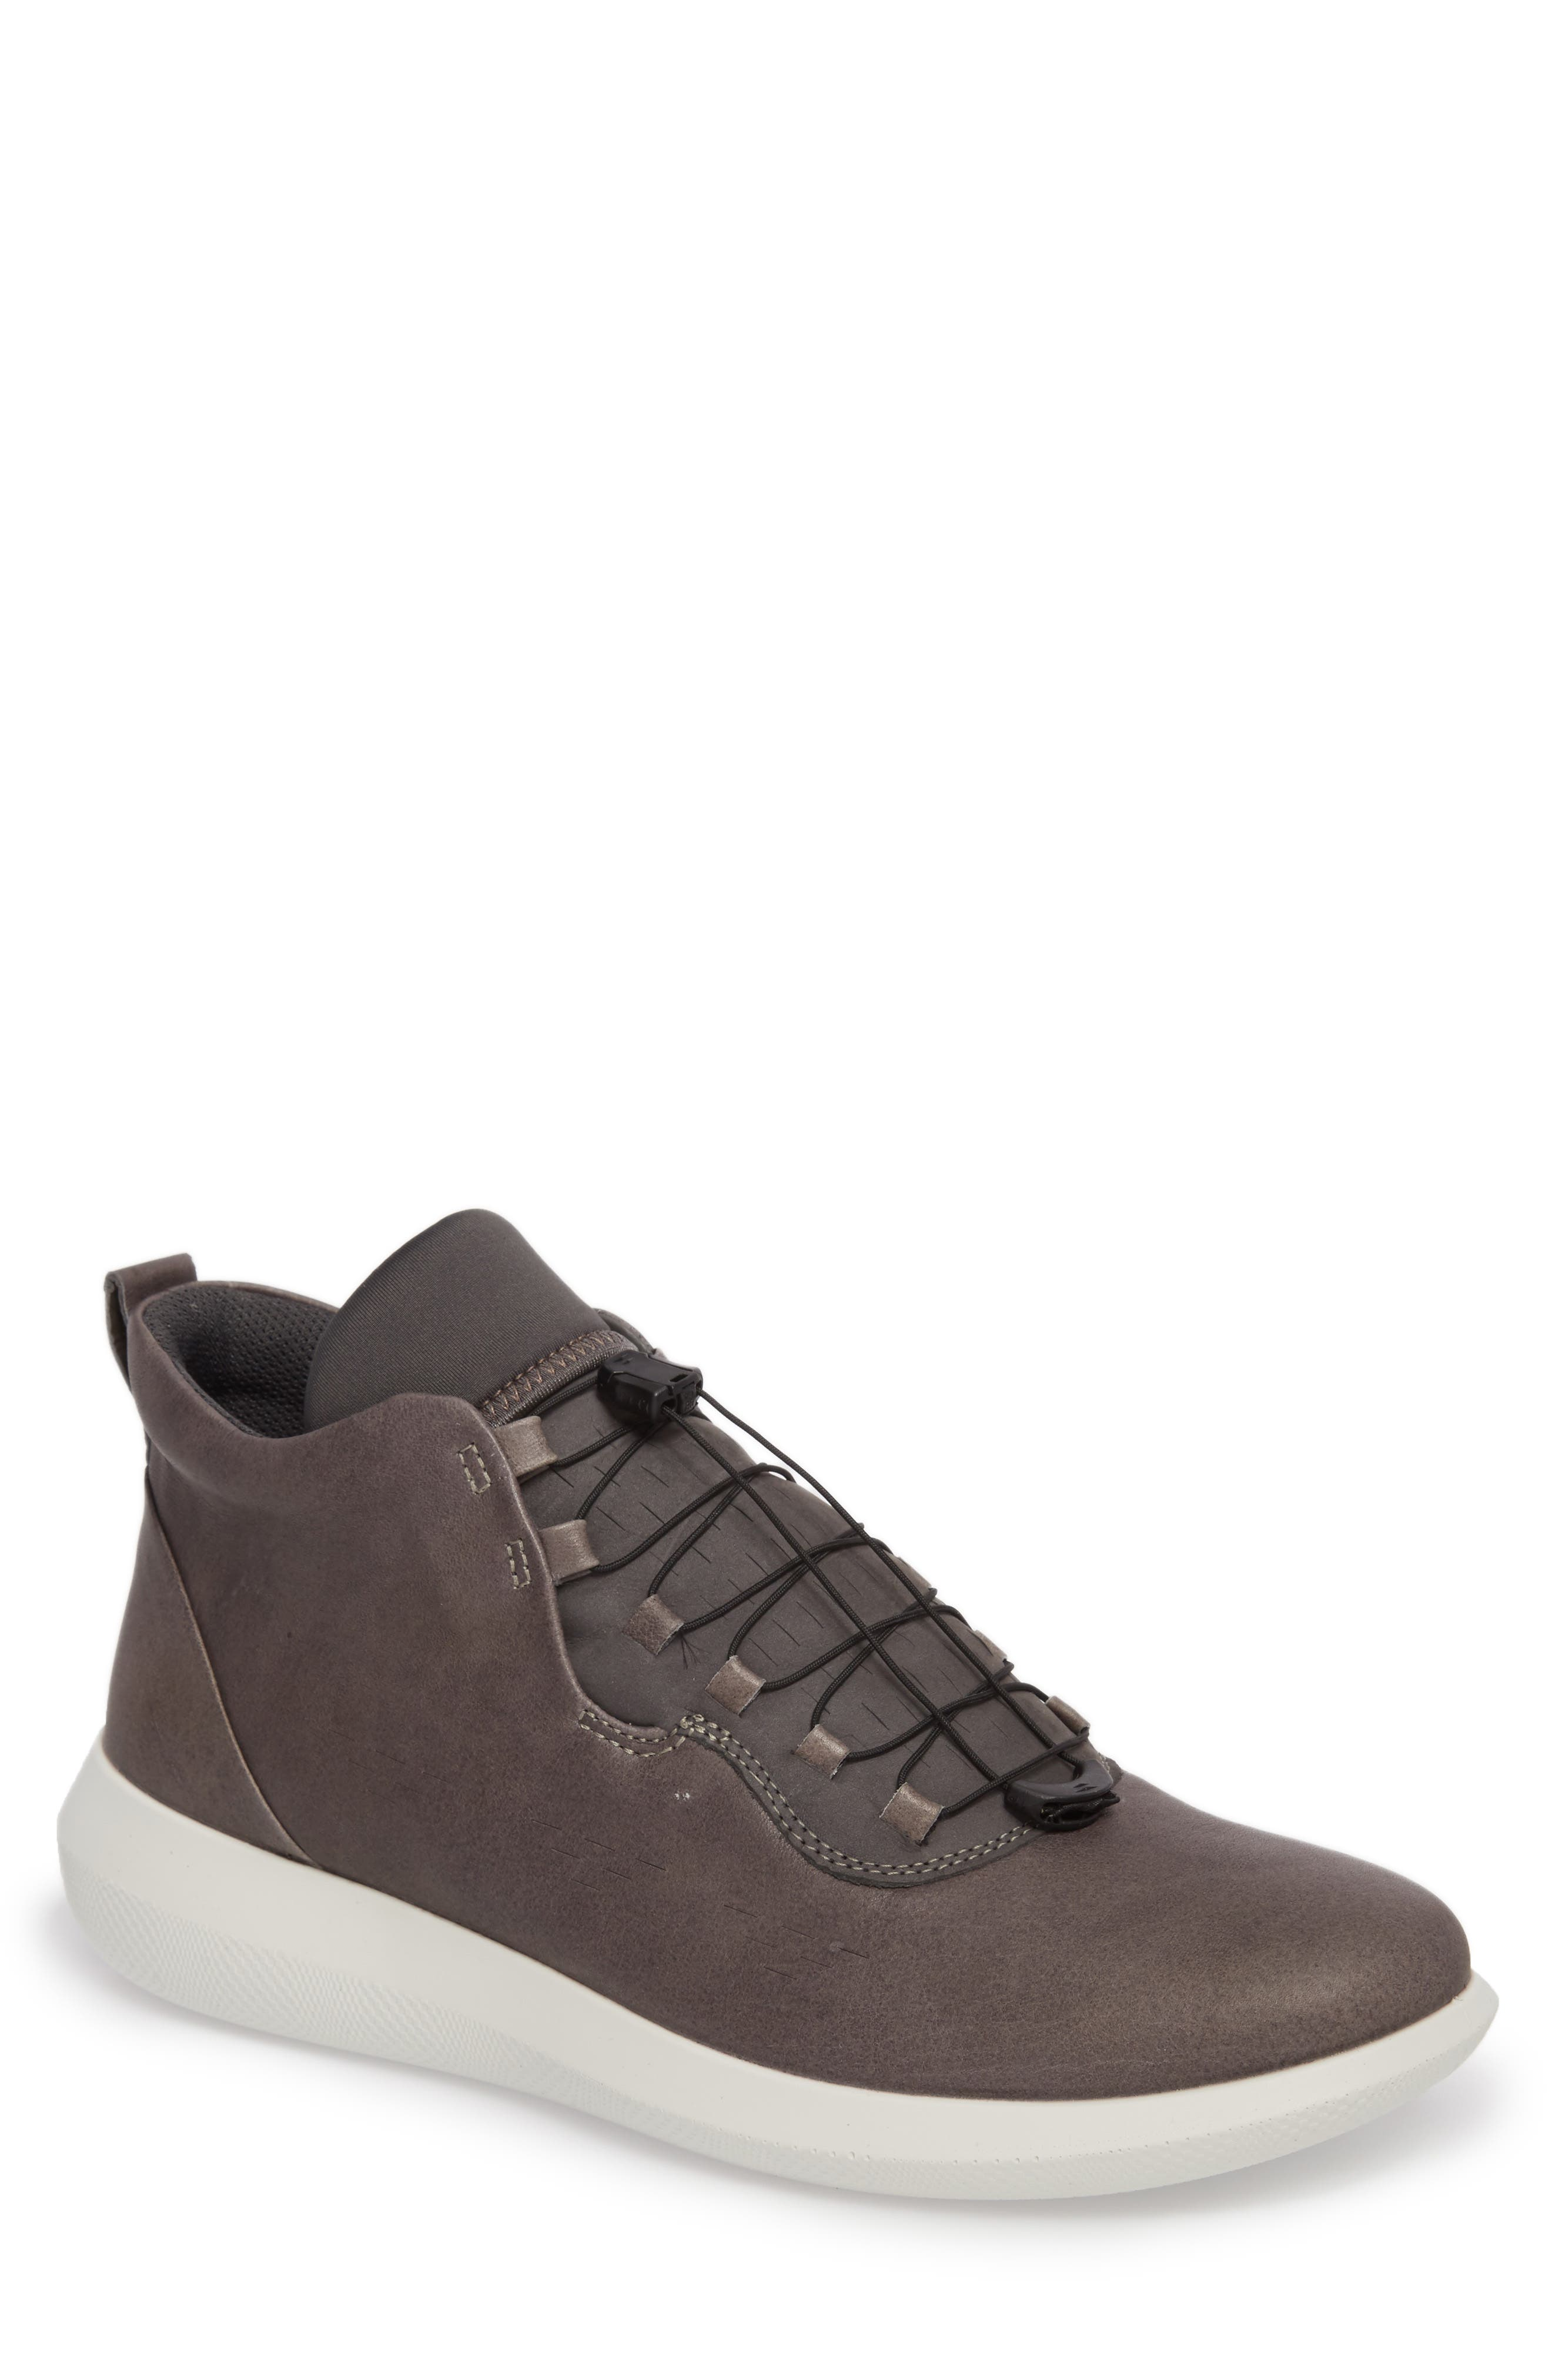 Scinapse High Top Sneaker,                             Main thumbnail 1, color,                             WILD DOVE LEATHER